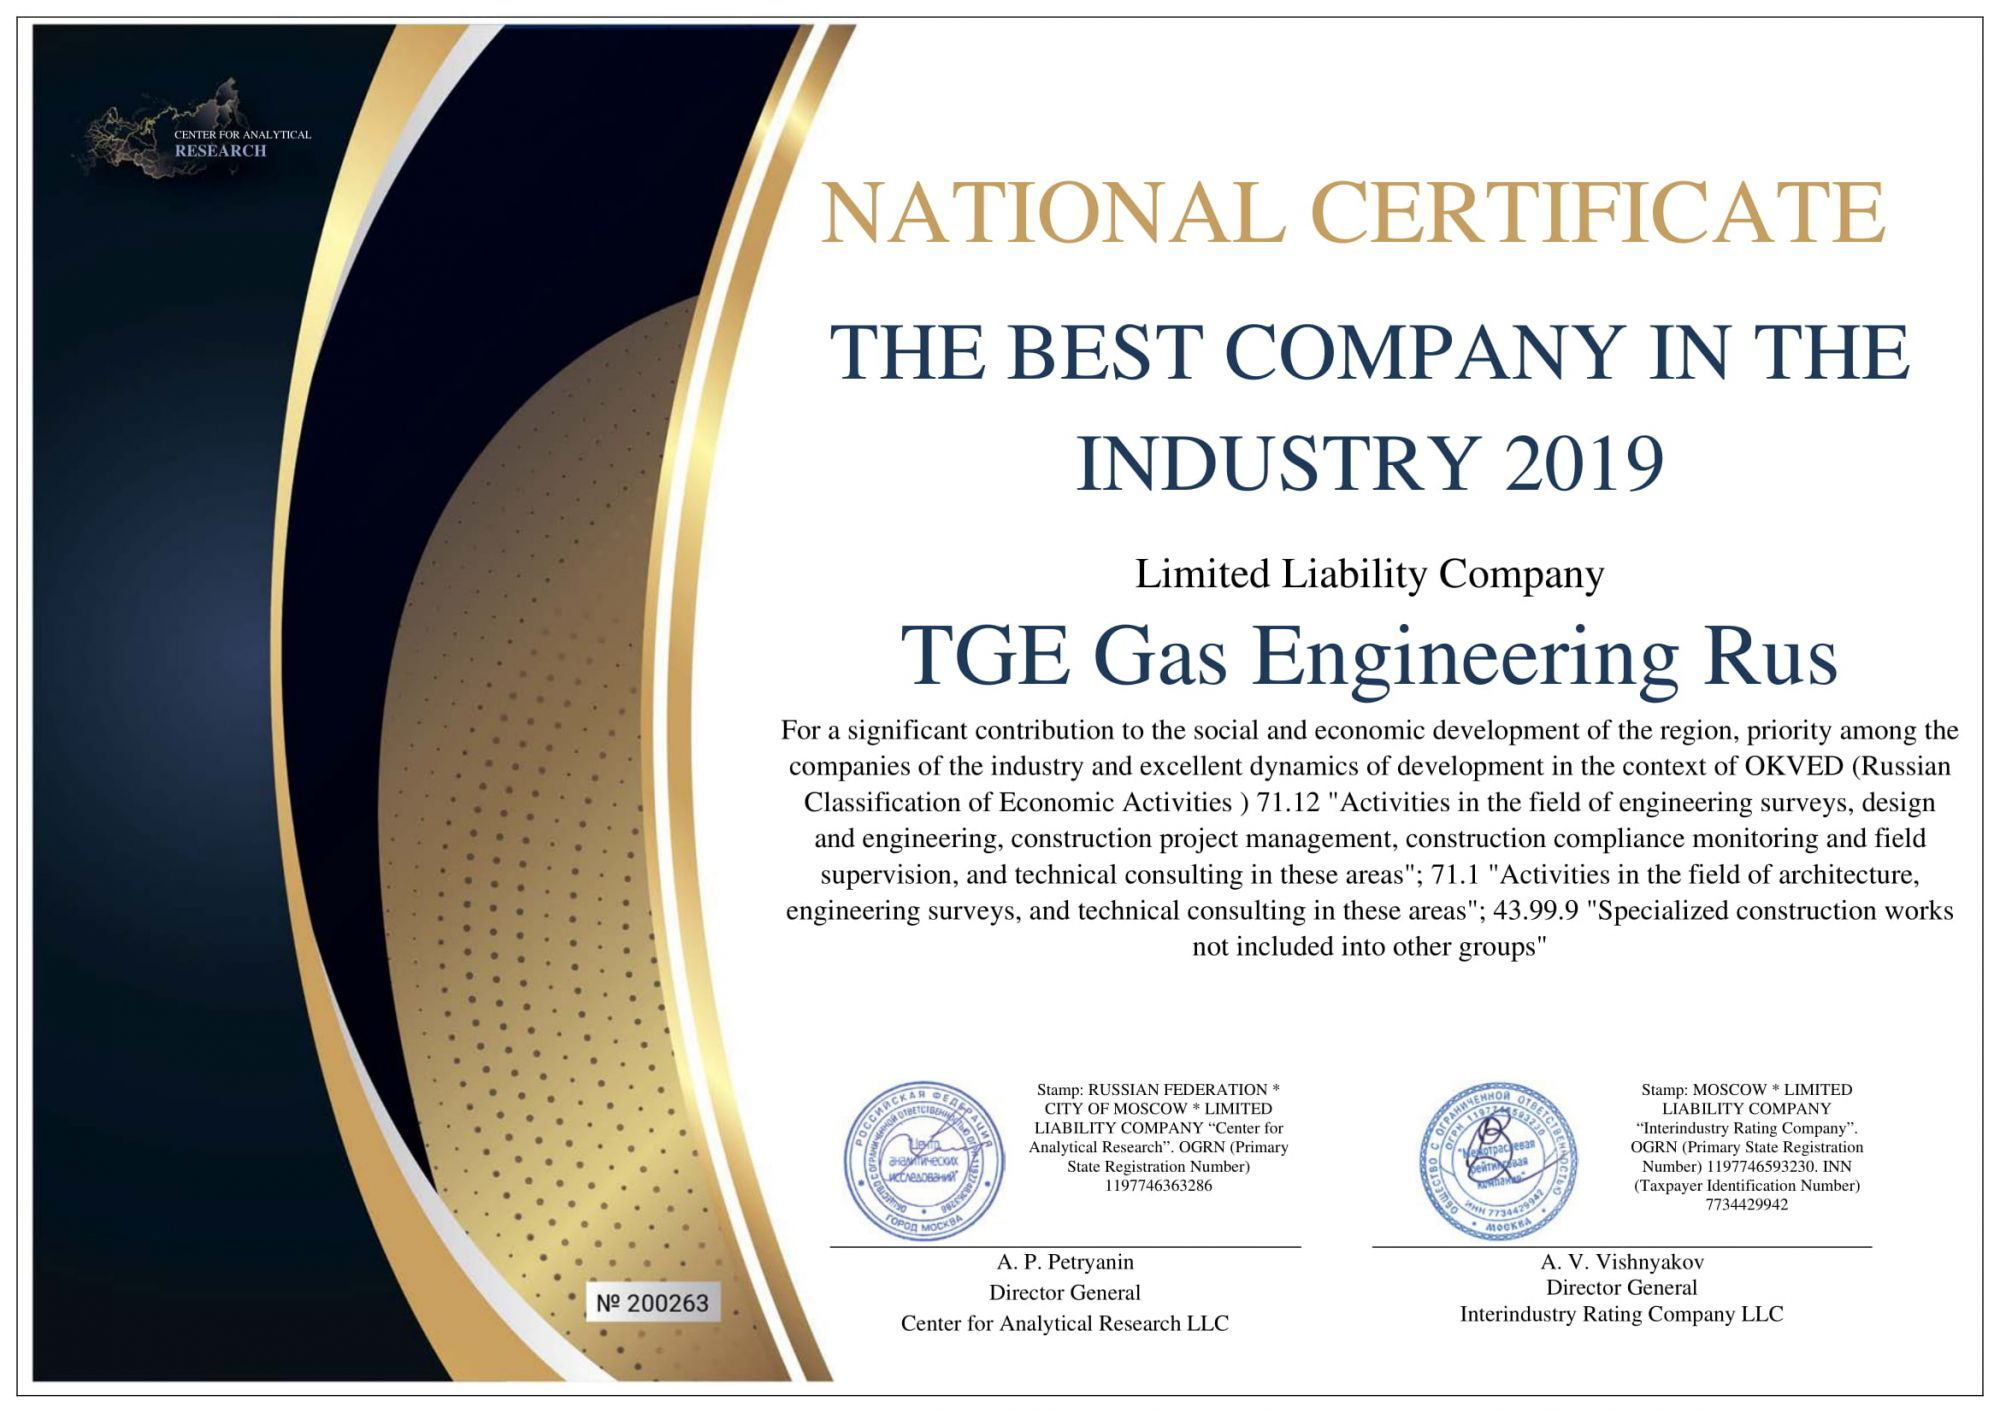 TGE Gas Engineering Rus was declared the best enterprise in the industry for 2019